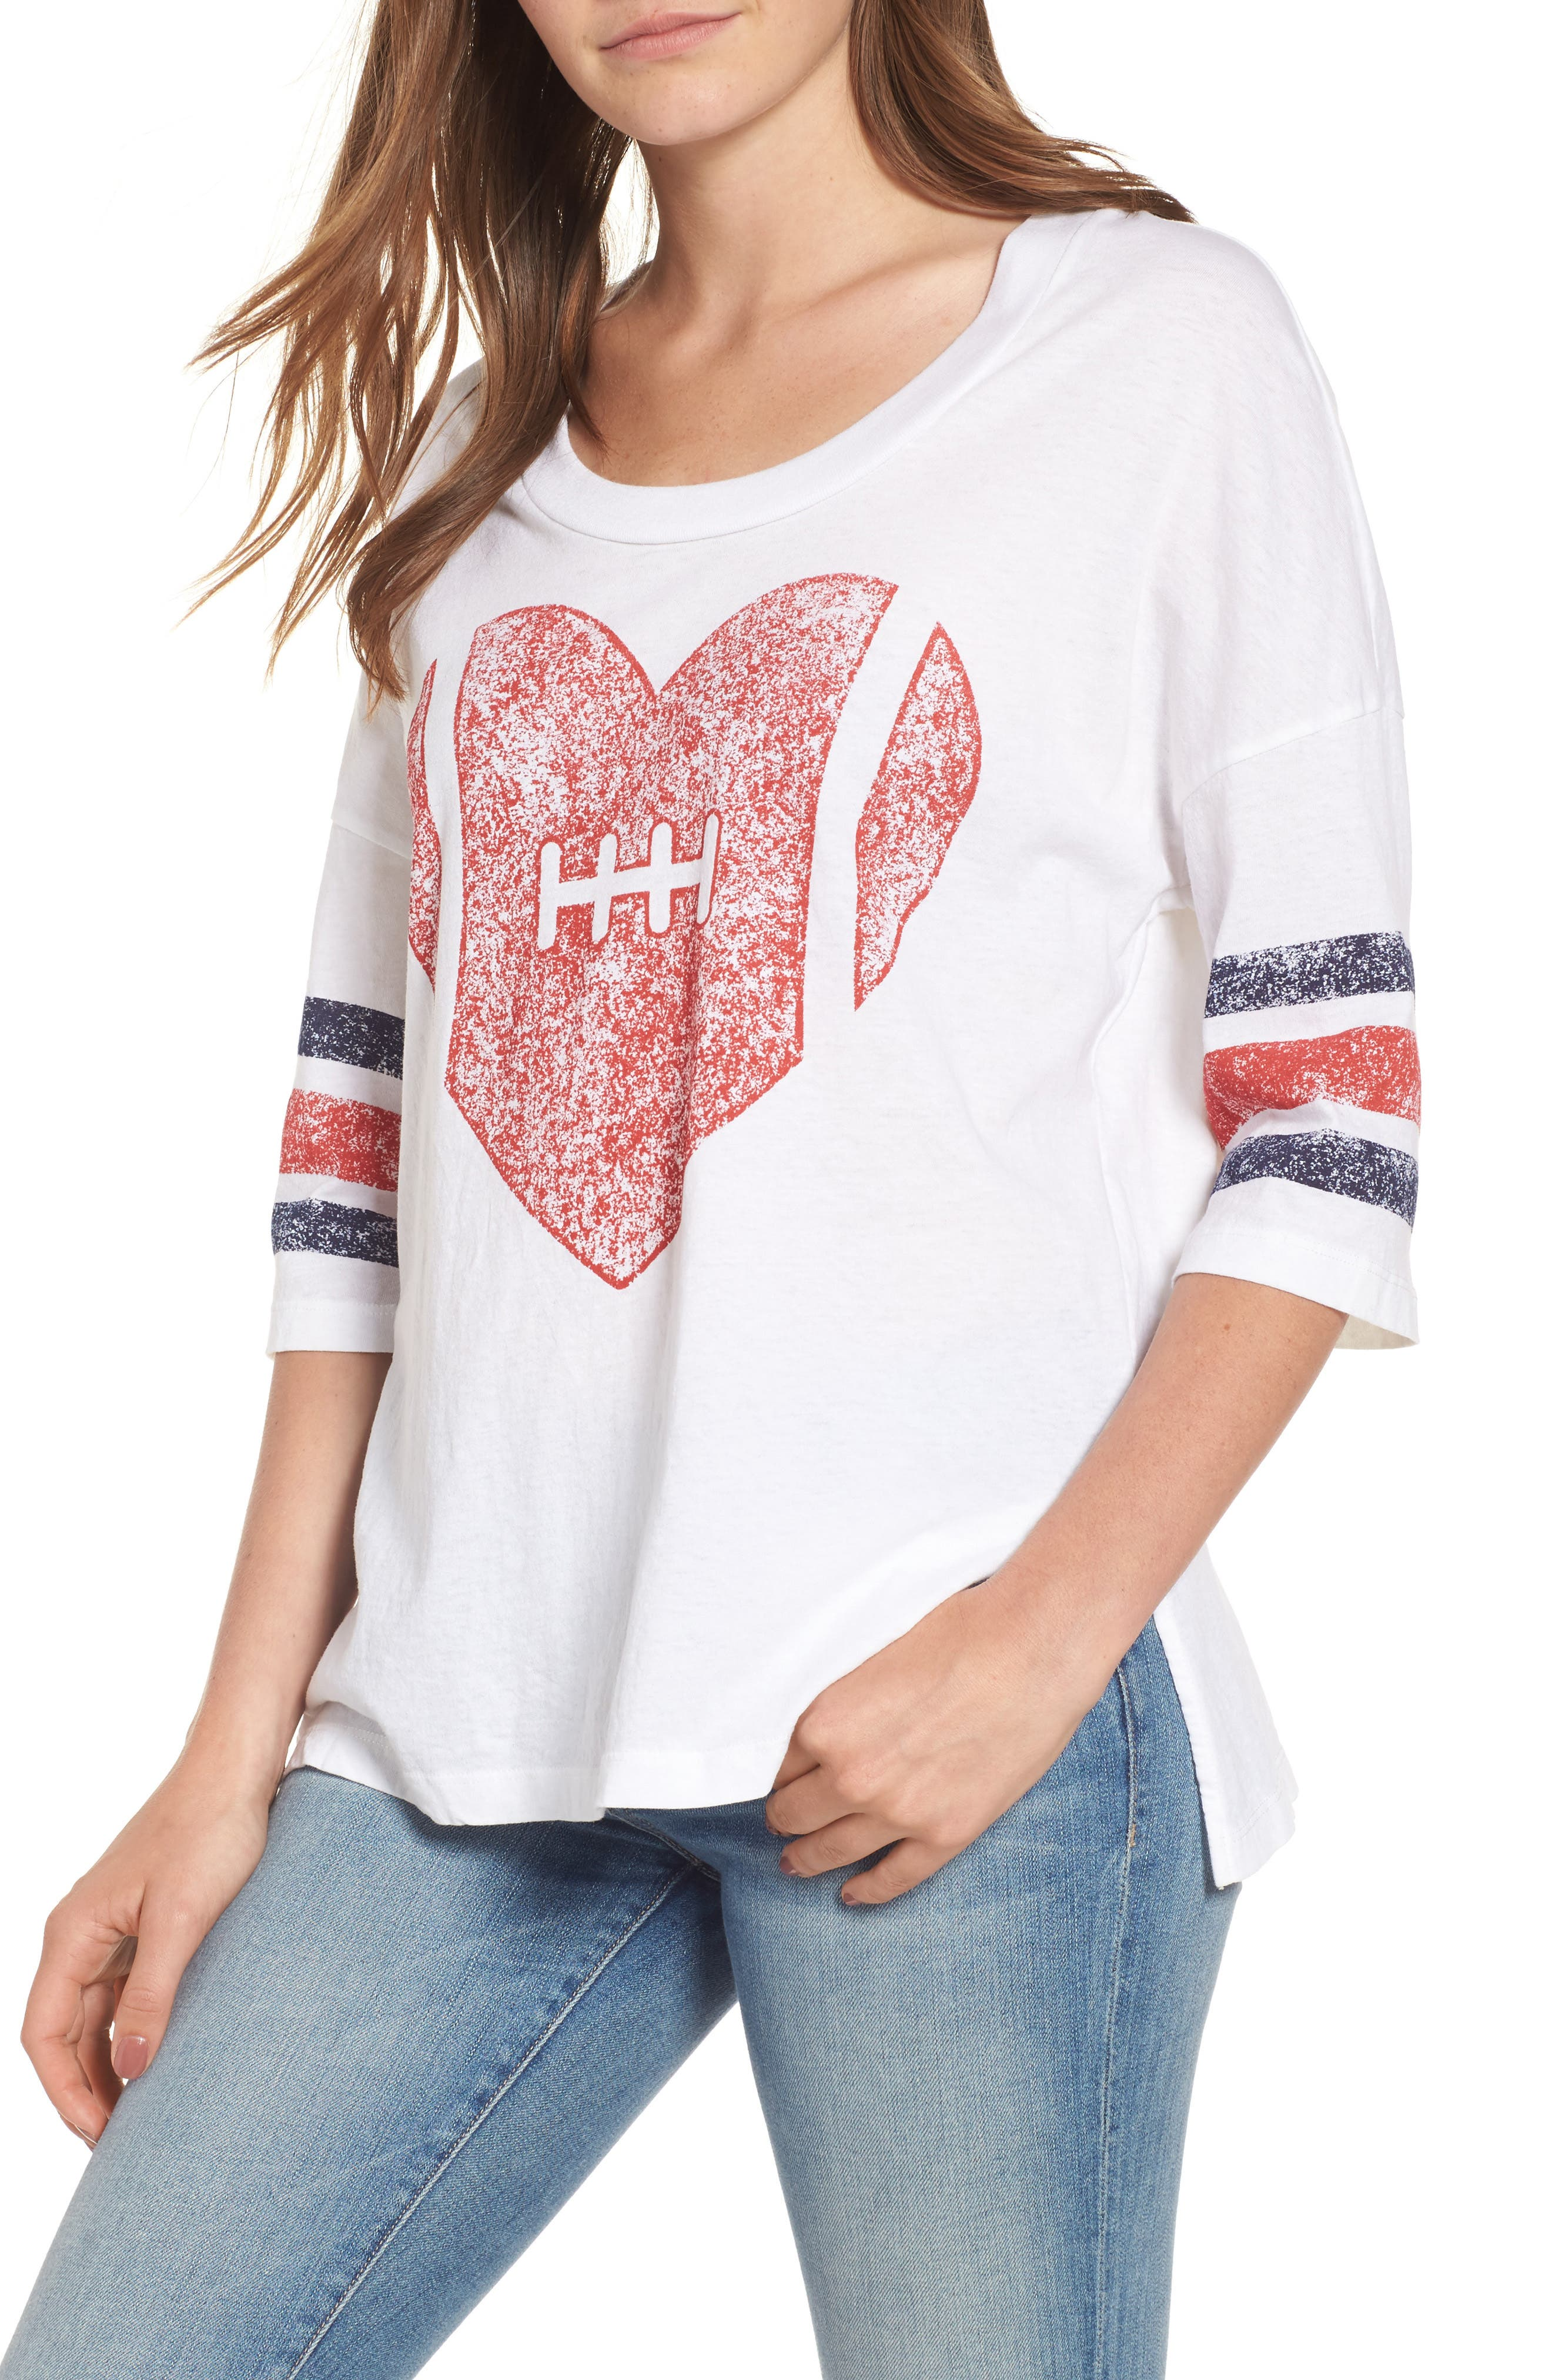 Main Image - Sundry Football Heart Tee (Nordstrom Exclusive)